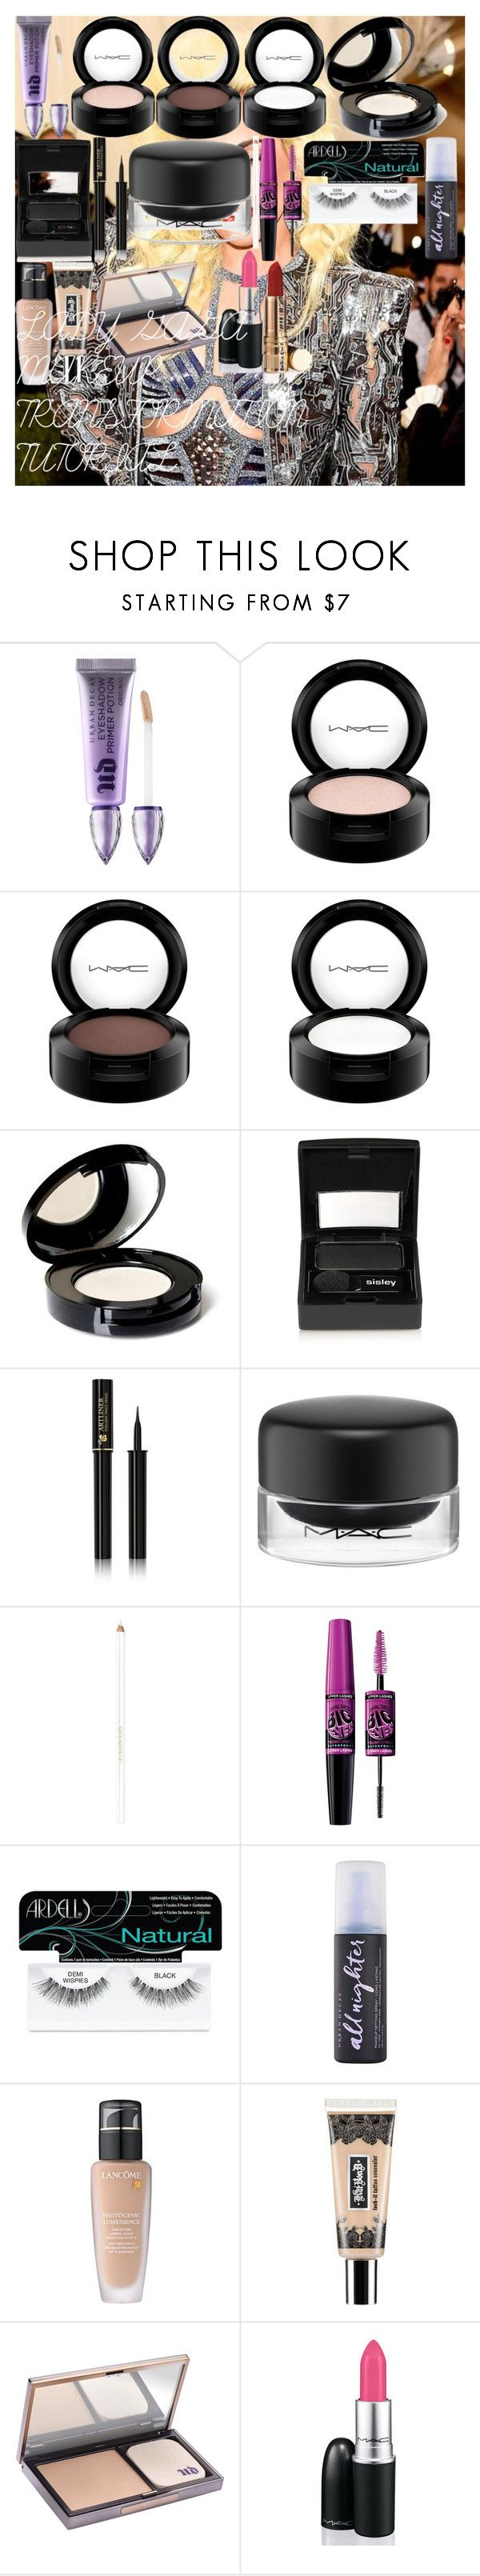 """""""LADY GAGA MAKEUP TRANSFORMATION TUTORIAL"""" by oroartye-1 on Polyvore featuring beauty, GALA, Urban Decay, MAC Cosmetics, Nvey Eco, Sisley, Lancôme, Maybelline, Ardell and Kat Von D"""